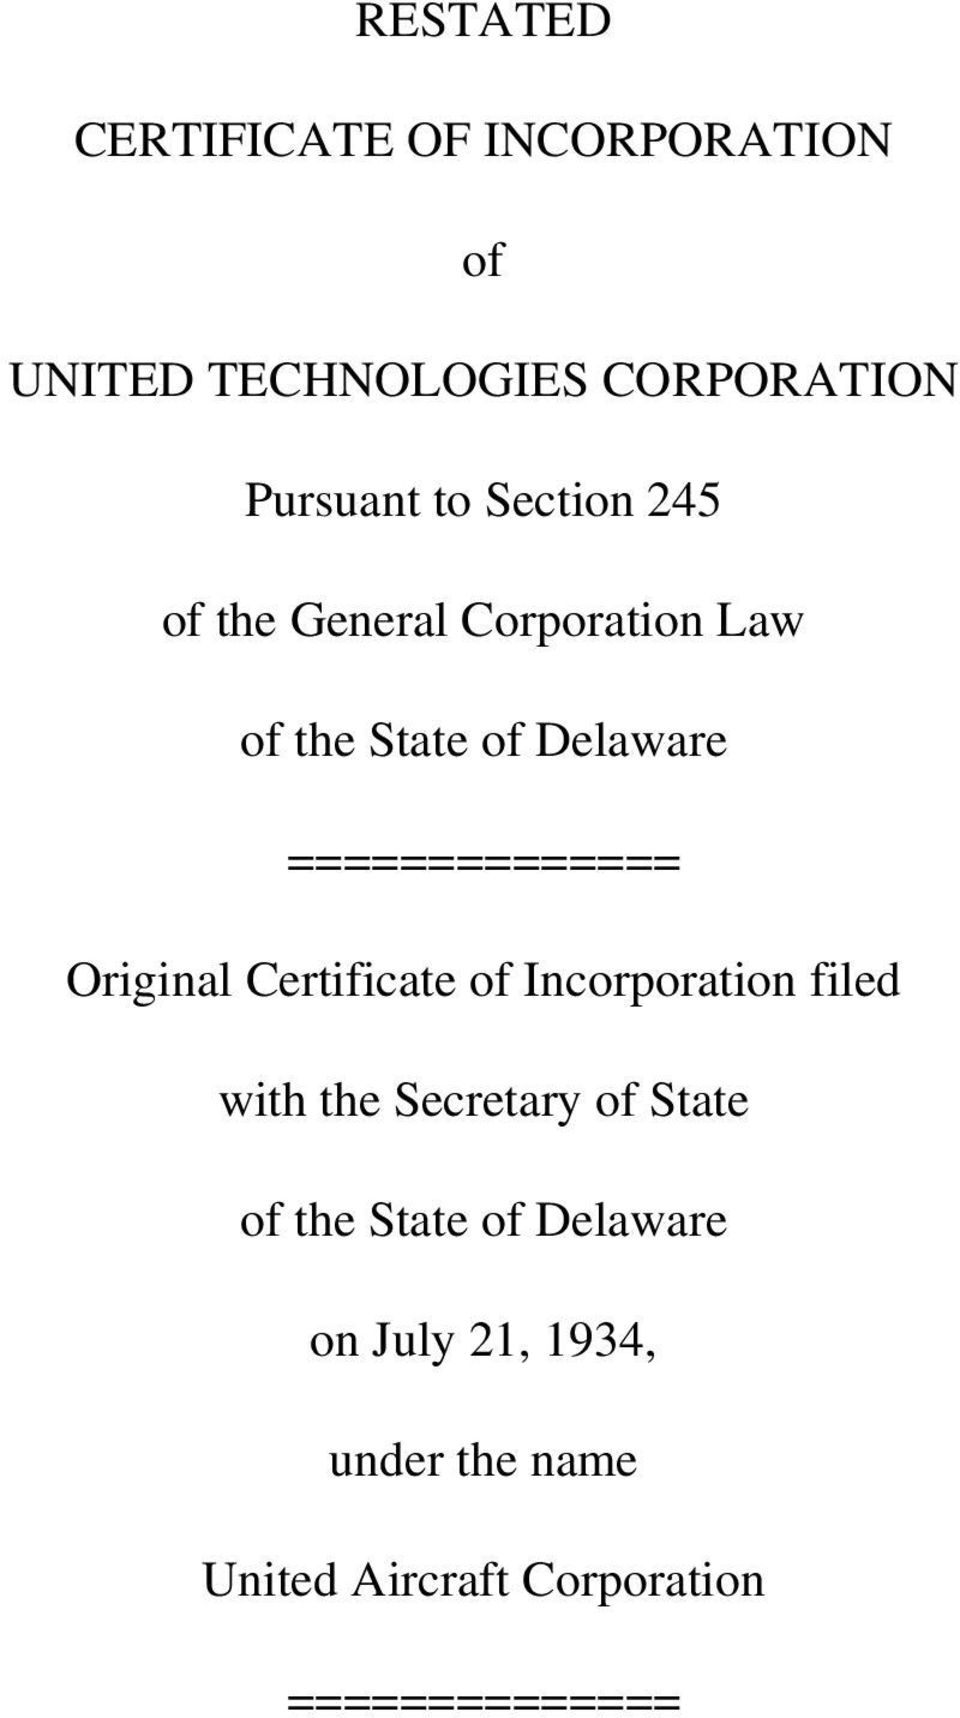 Original Certificate of Incorporation filed with the Secretary of State of the State